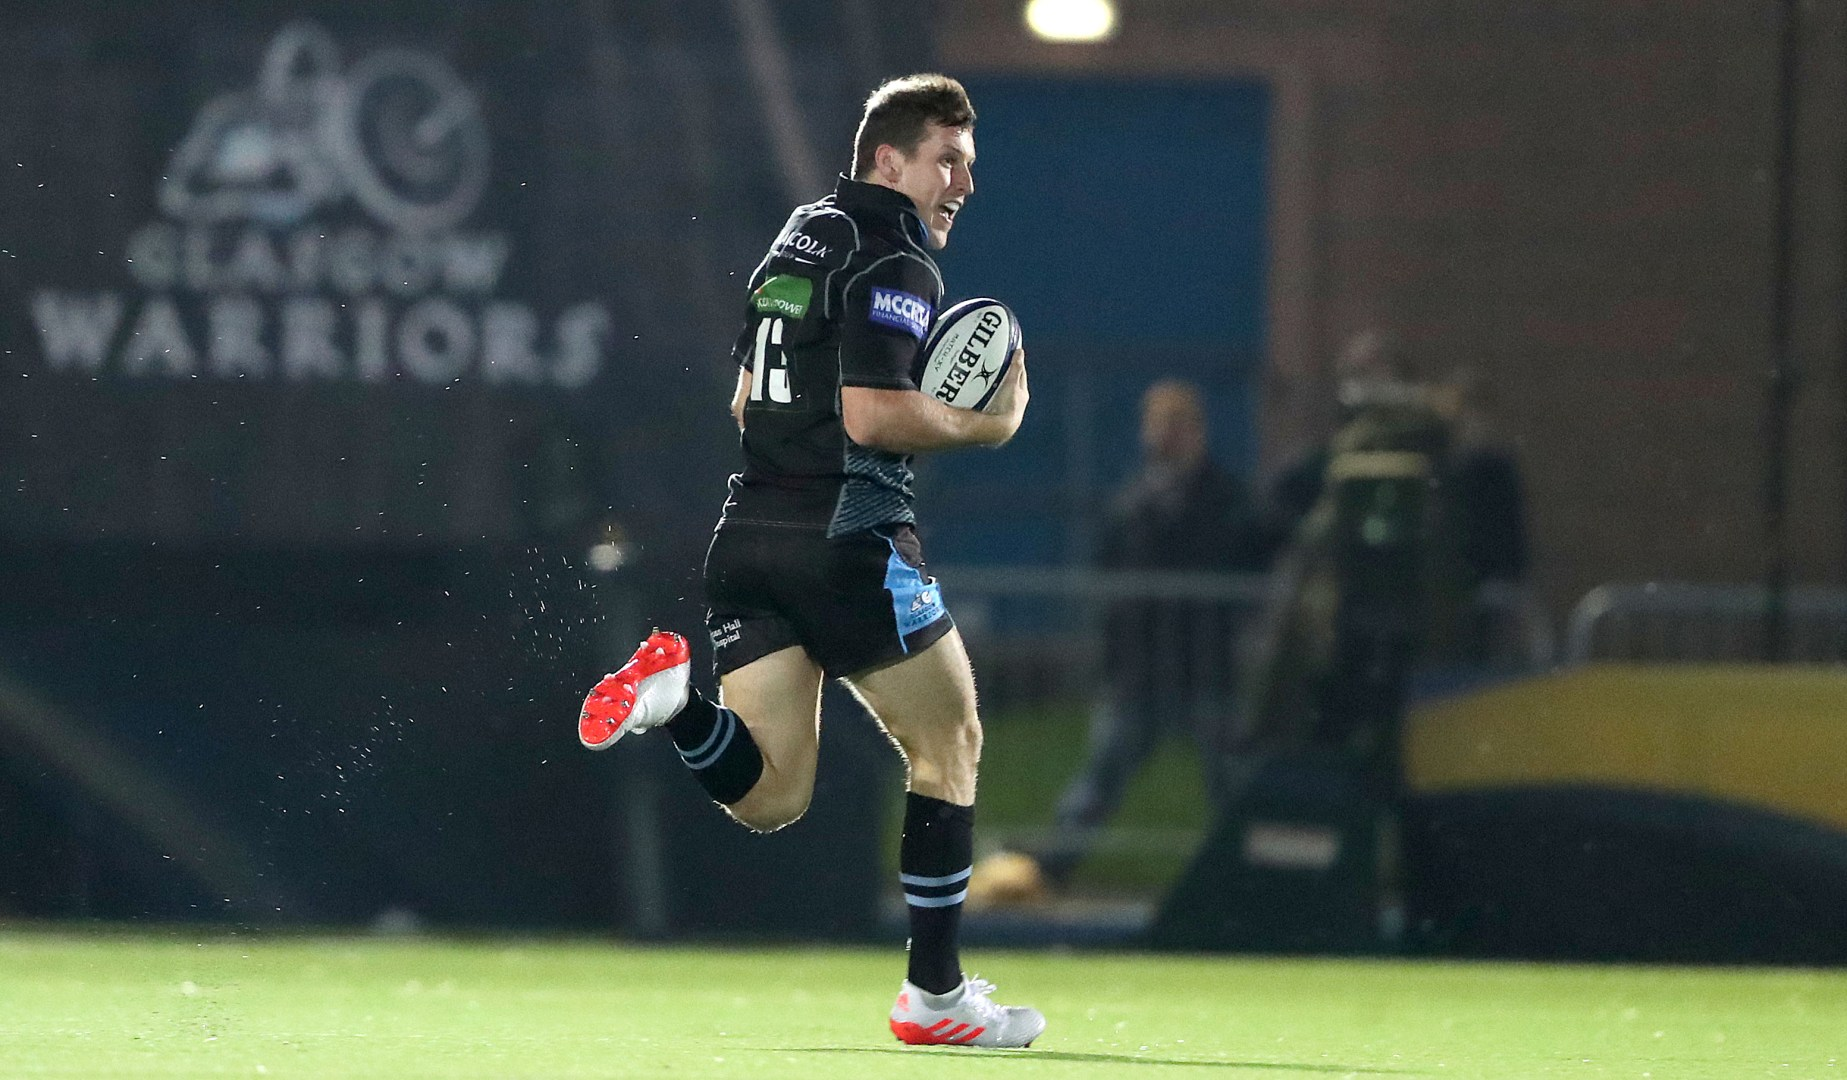 LionsWatch: Scottish duo lead the way for Glasgow